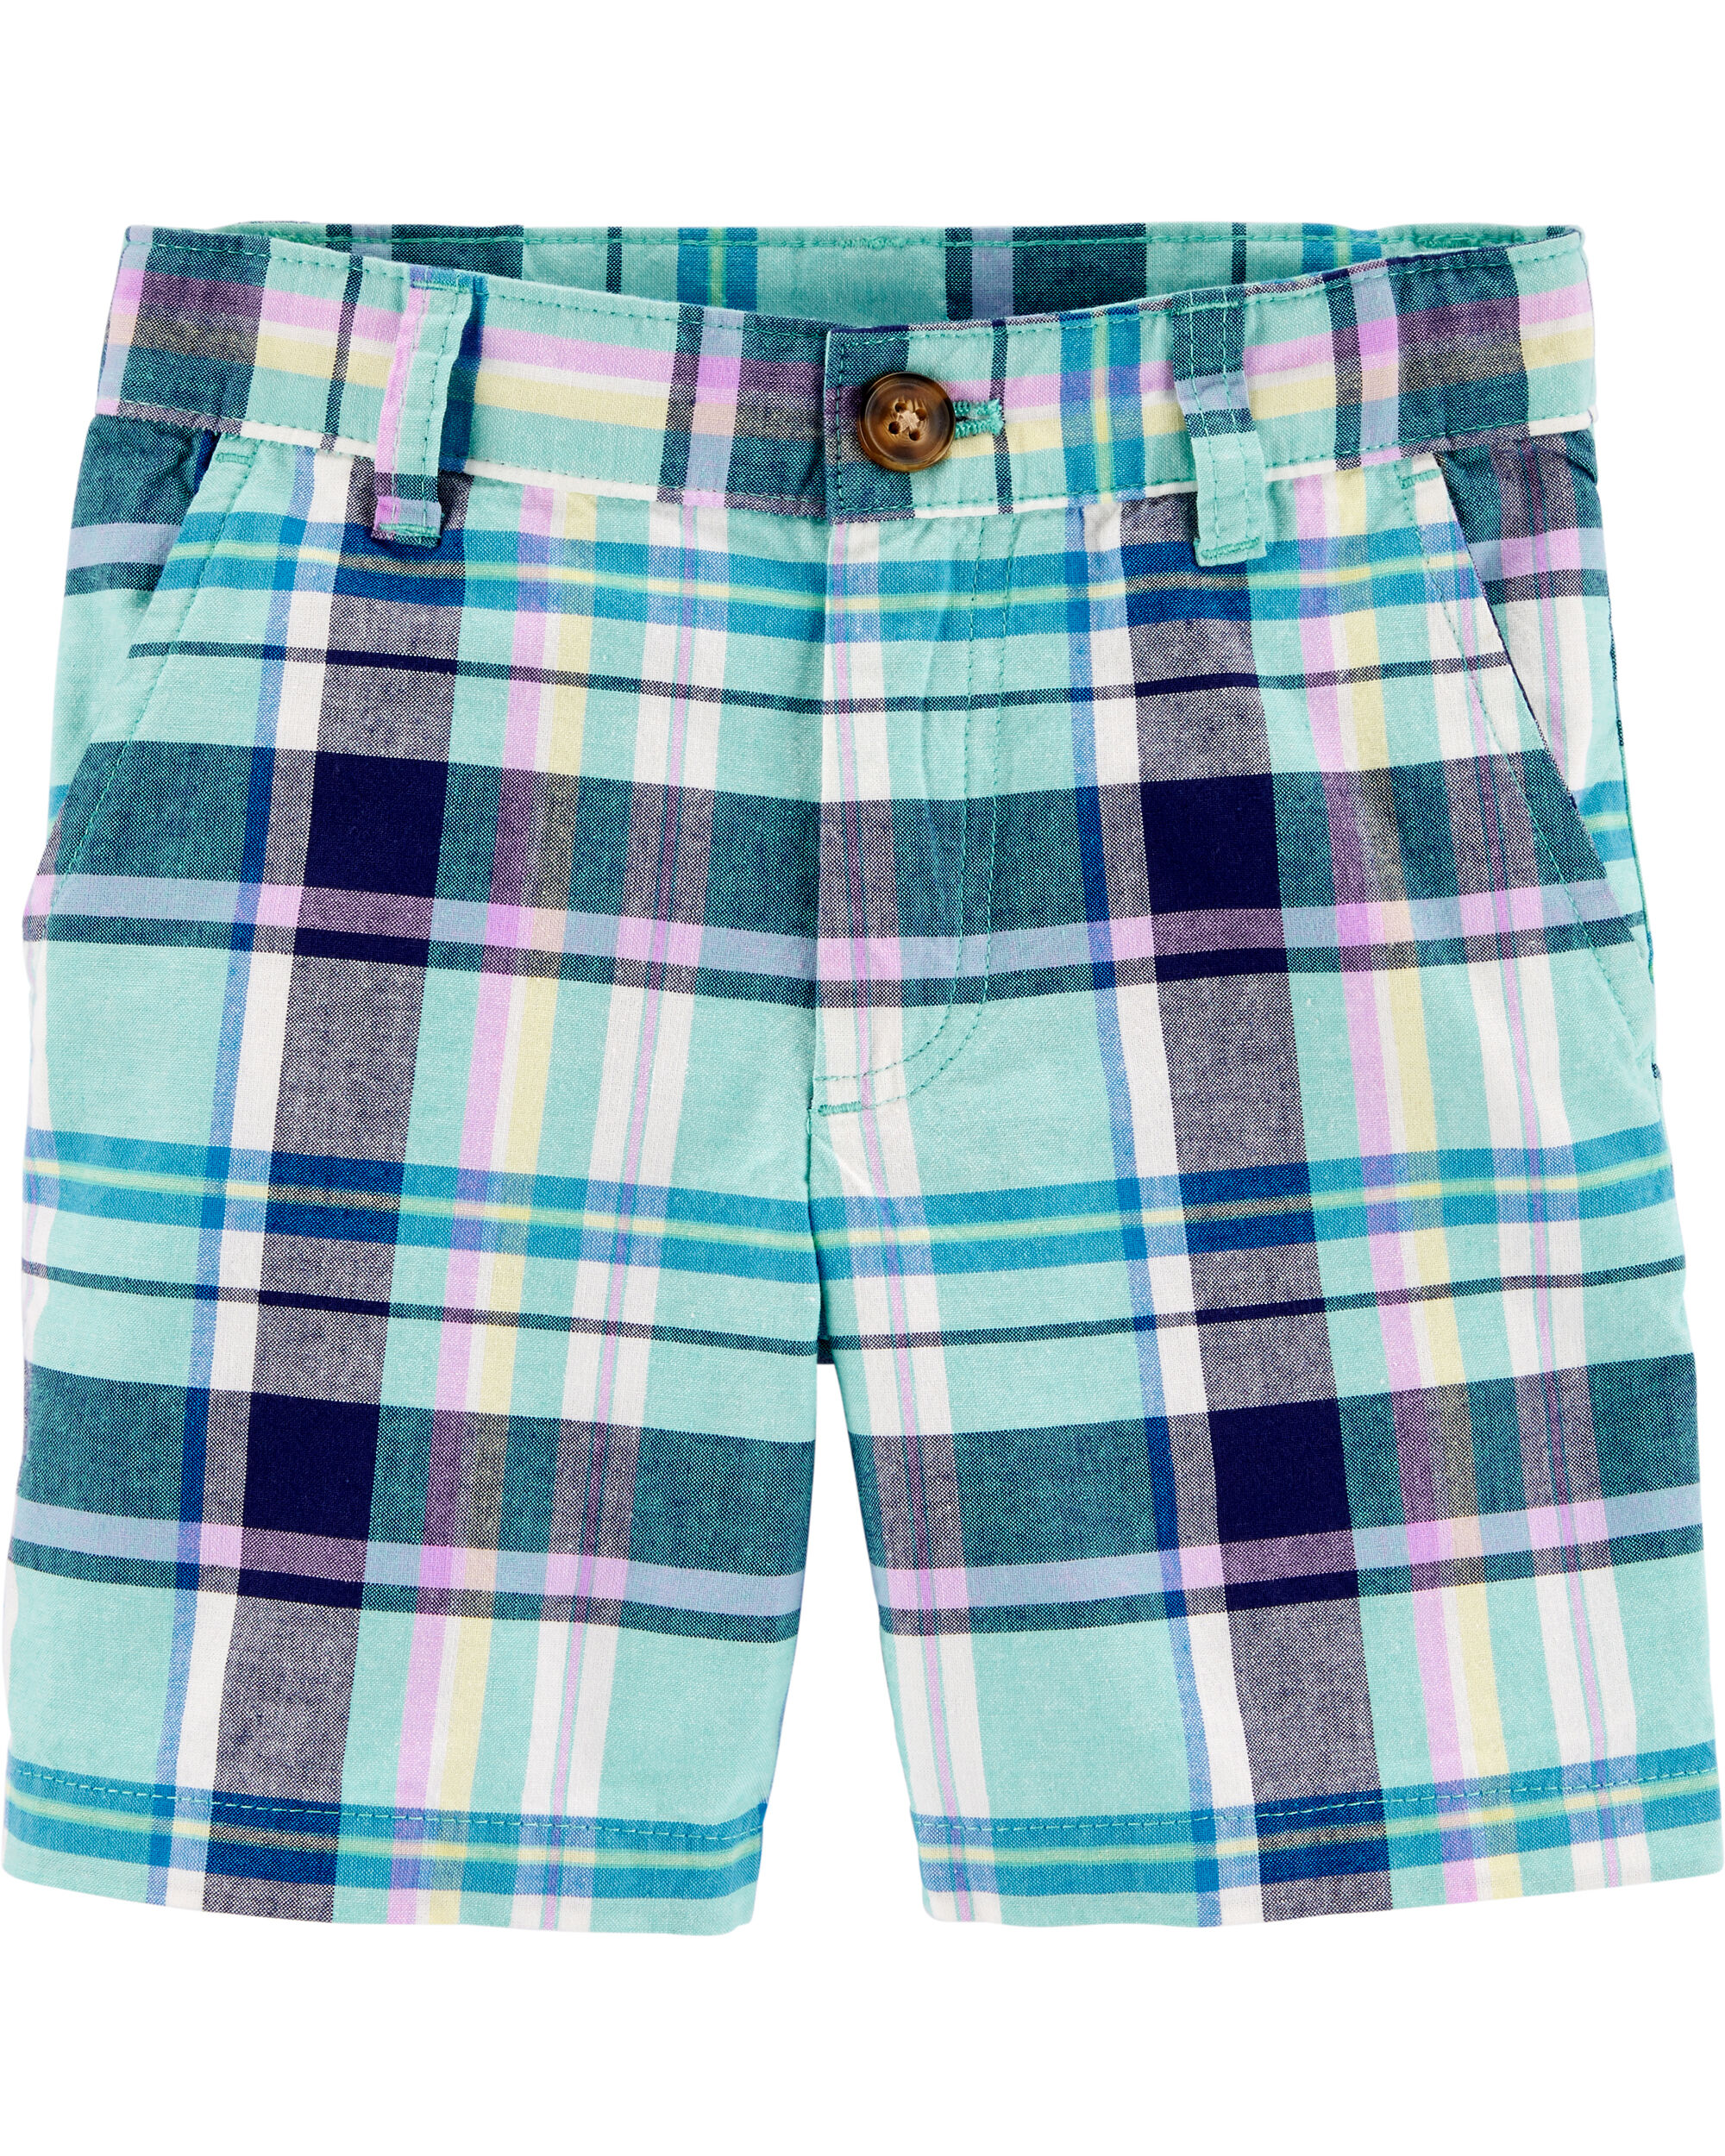 Plaid Flat-Front Shorts